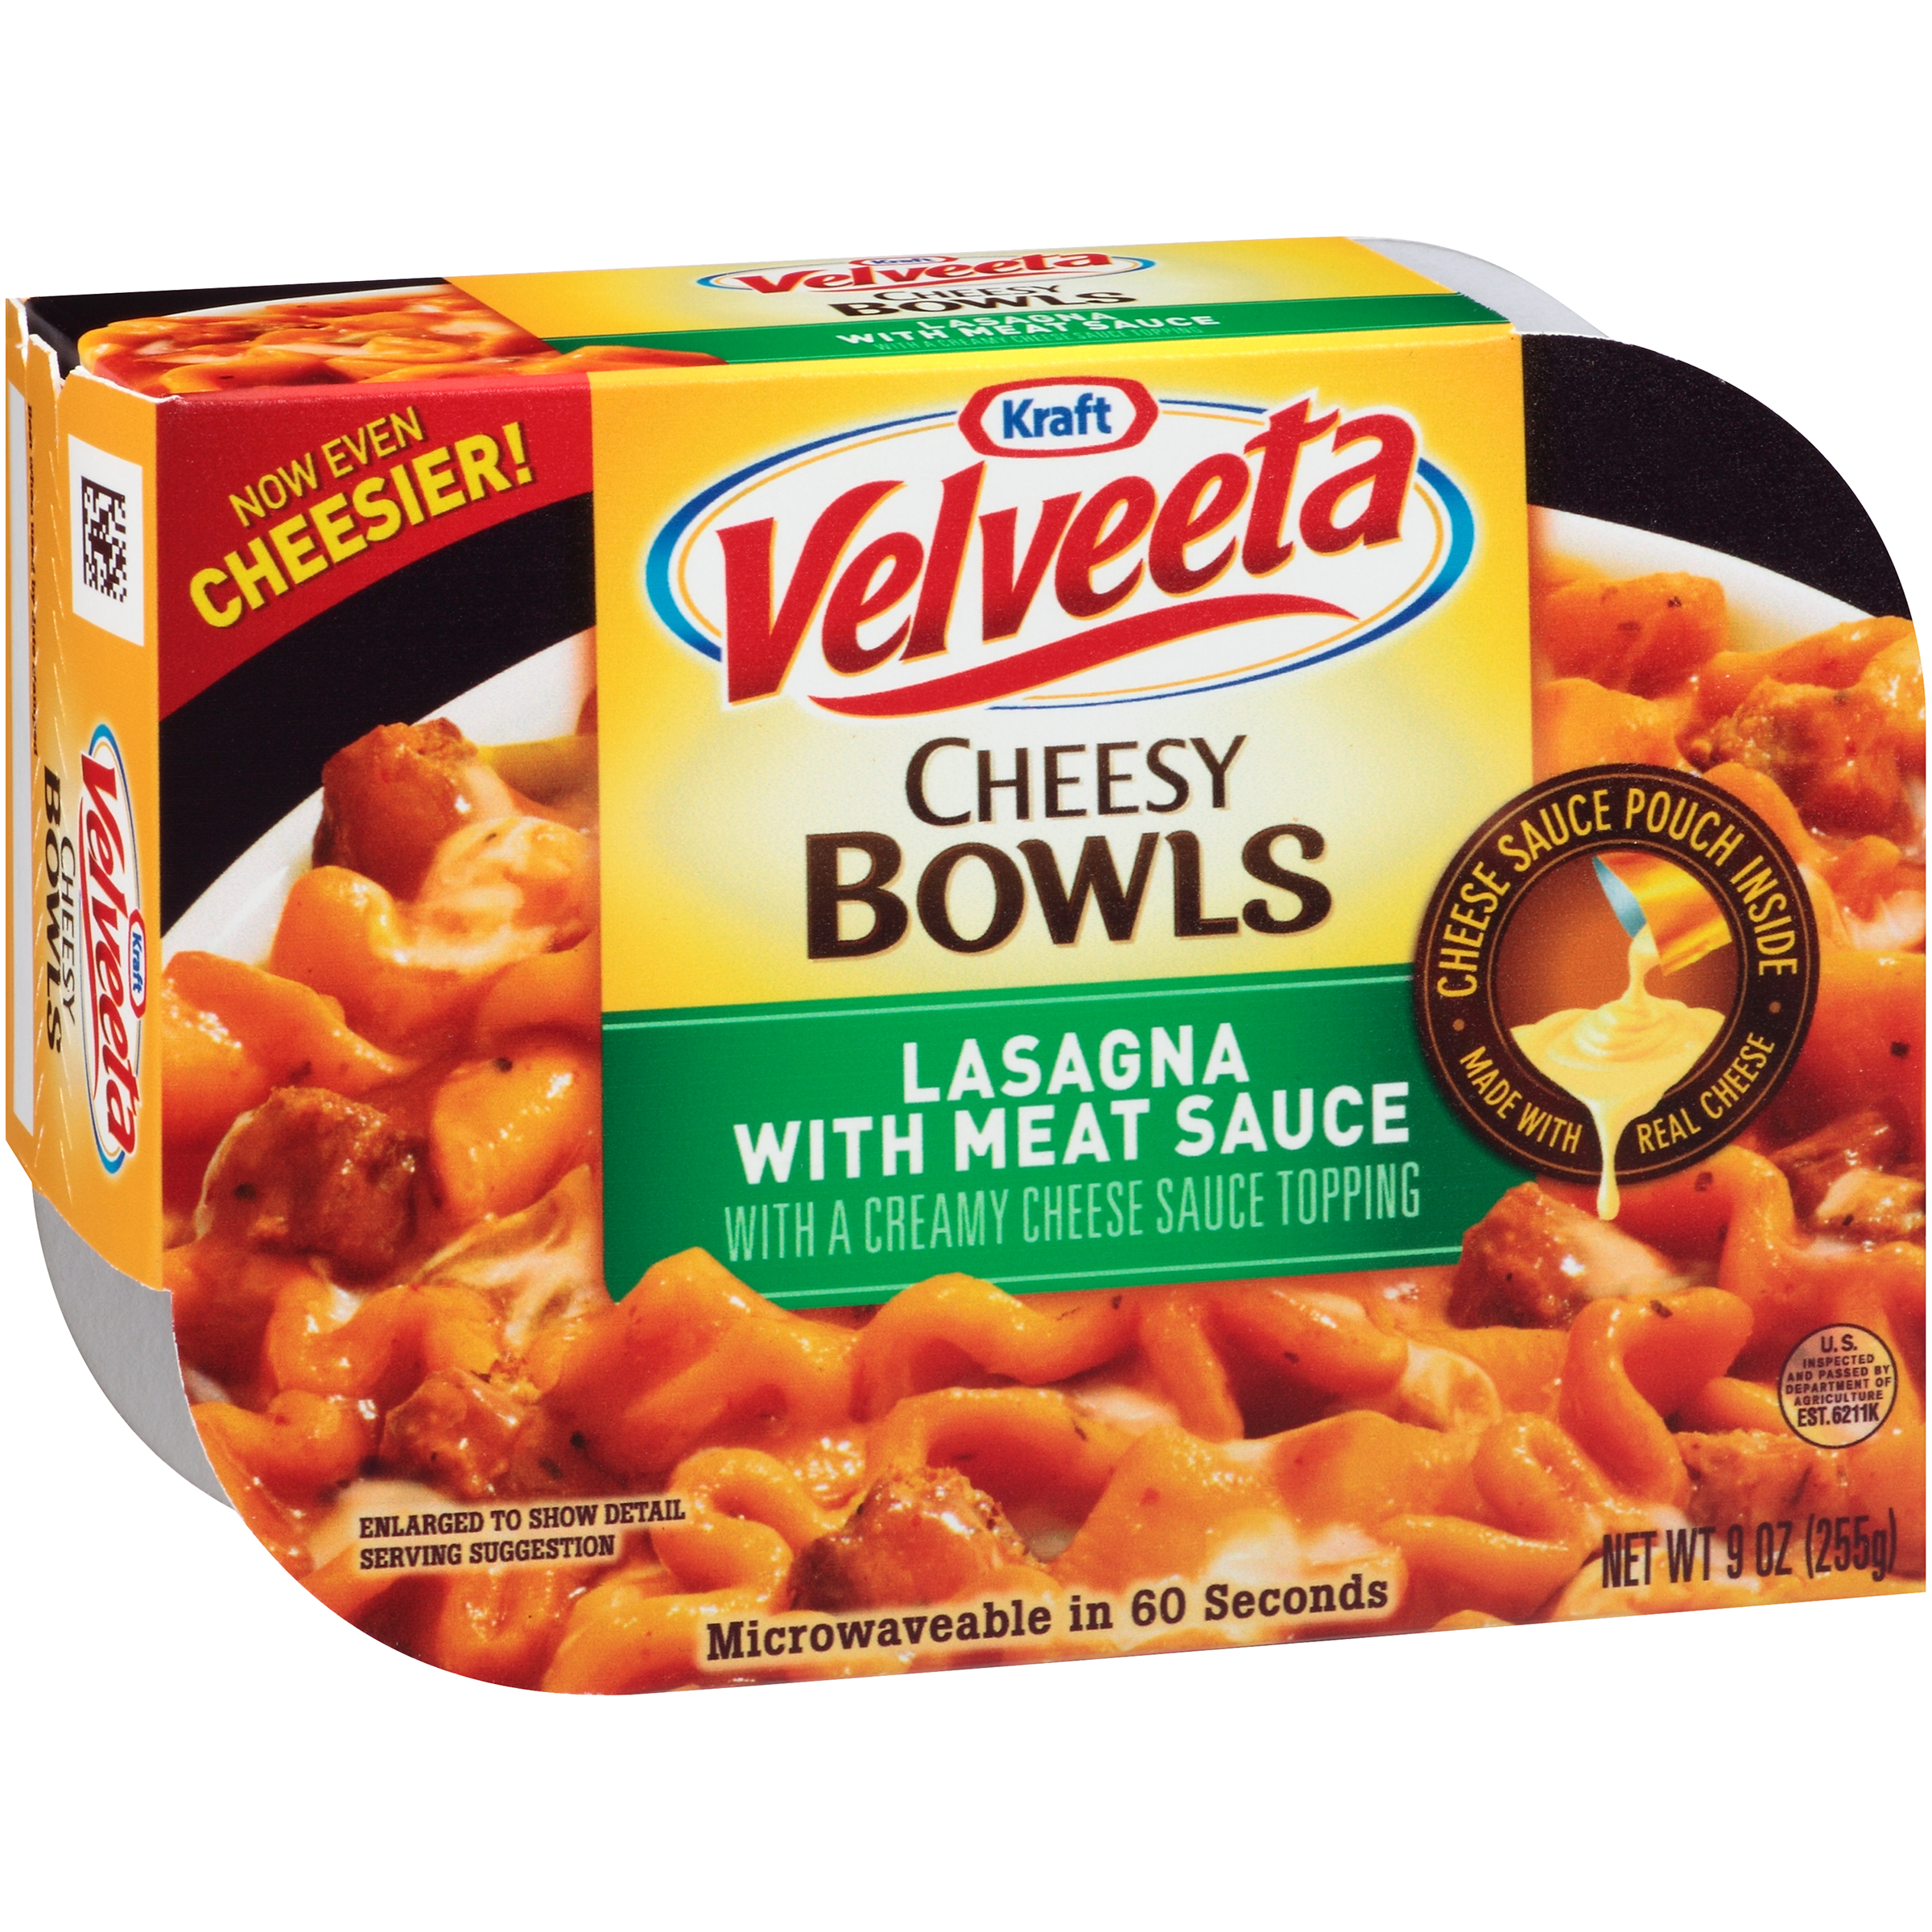 Kraft Velveeta Bowls Lasagna With Meat Sauce, 9 OZ (255g) 2100004255